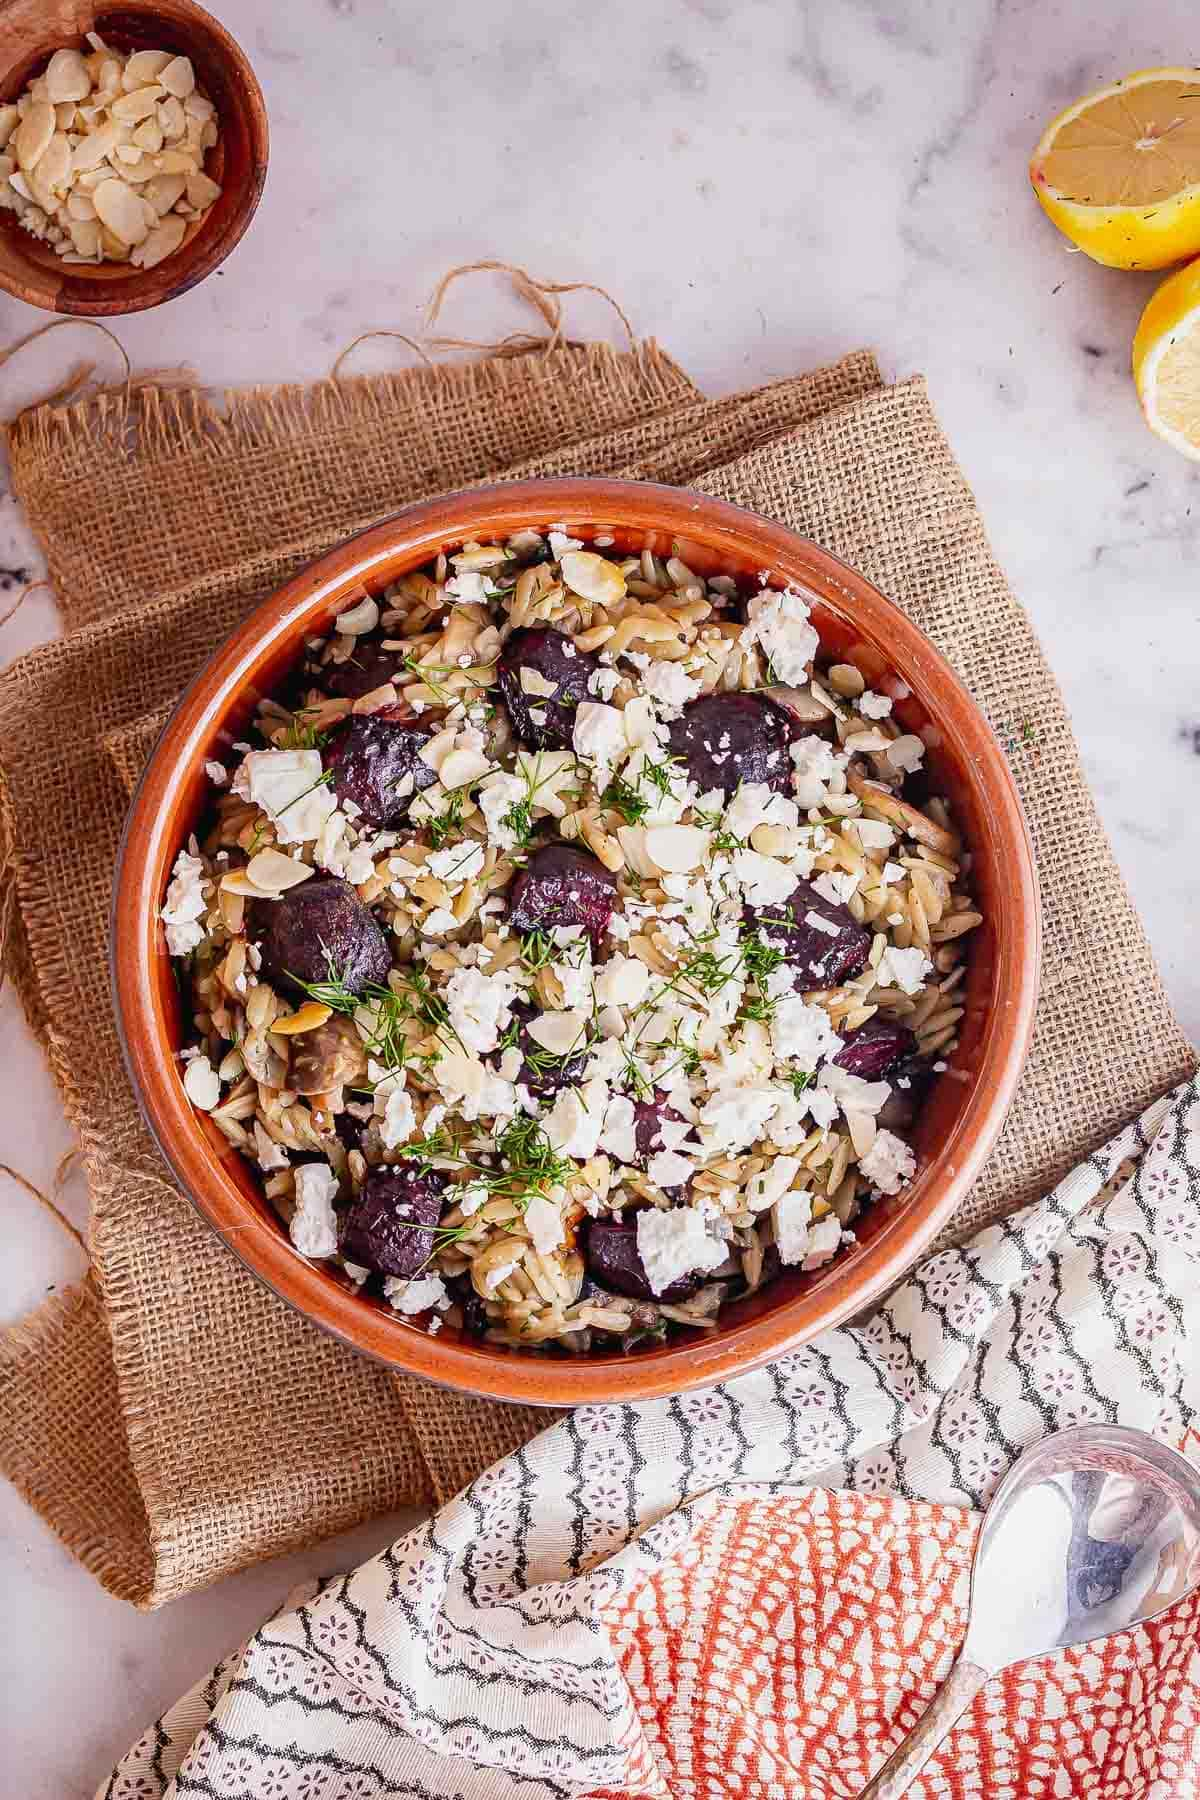 Overhead shot of a bowl of orzo on a hessian mat on a marble background